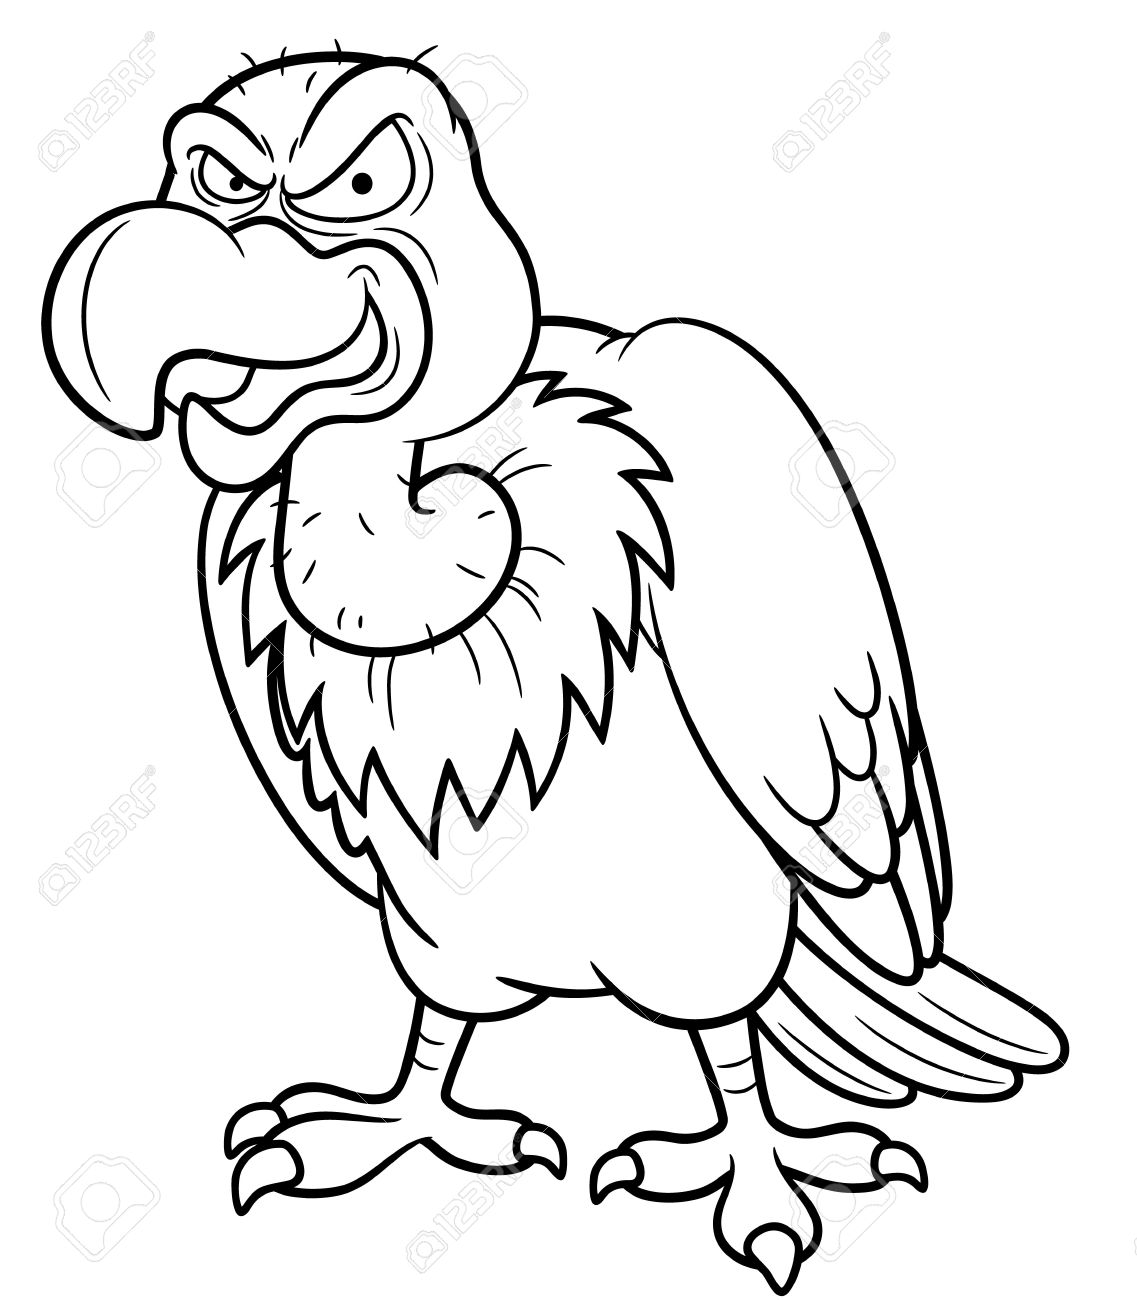 vulture coloring page vulture coloring pages preschool and kindergarten coloring page vulture